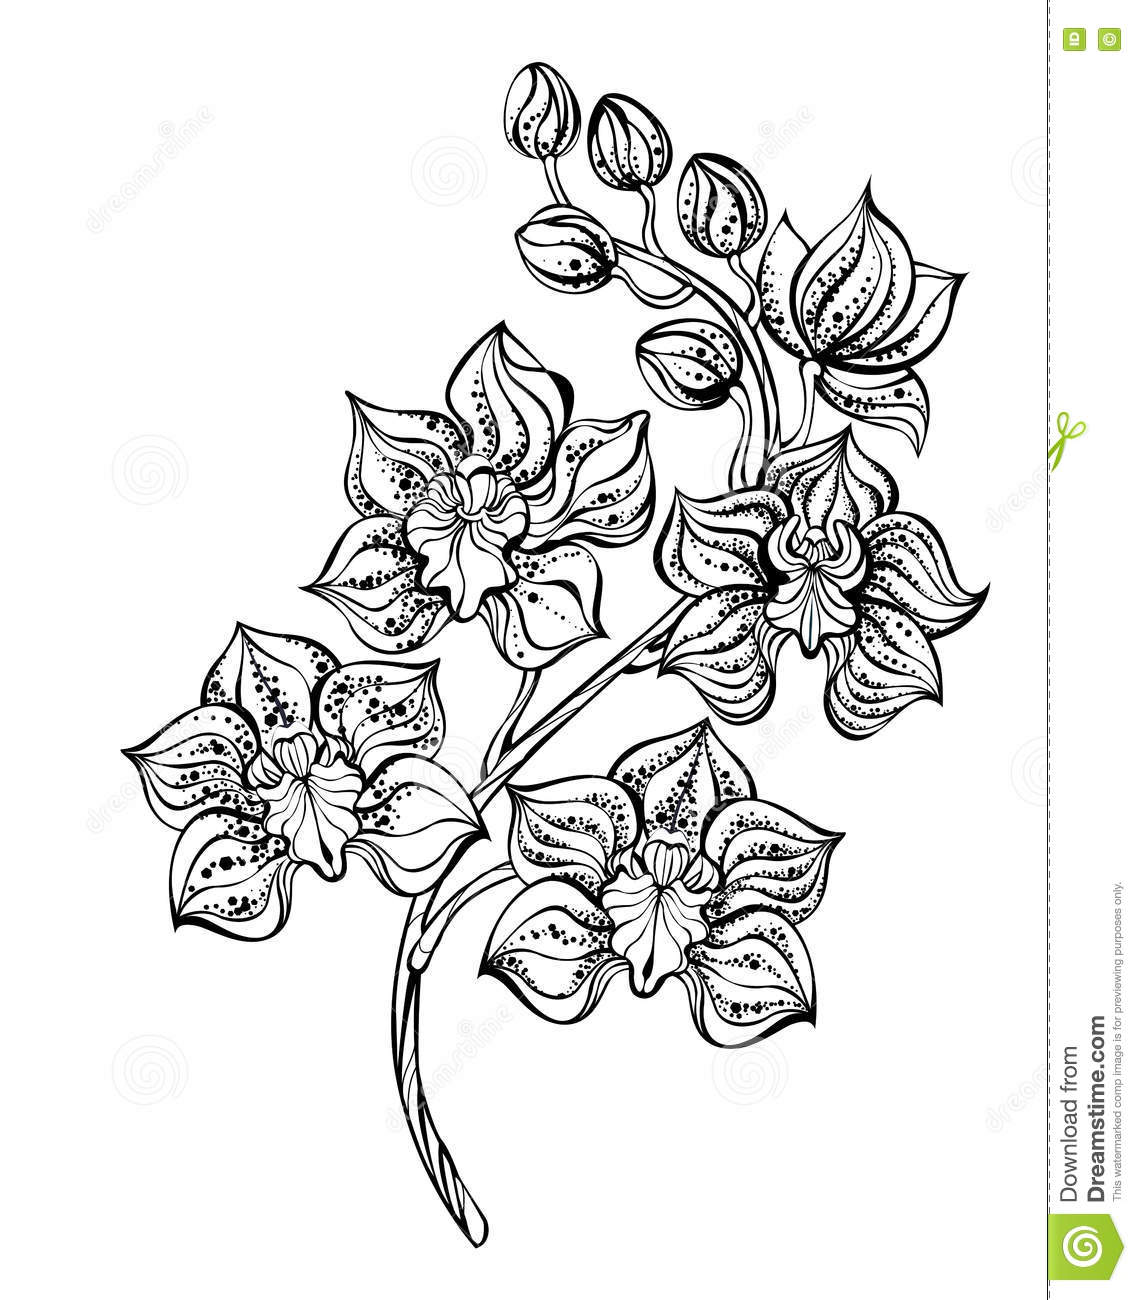 Contour Orchid Stock Vector Illustration Of Pencil Concept 74492195